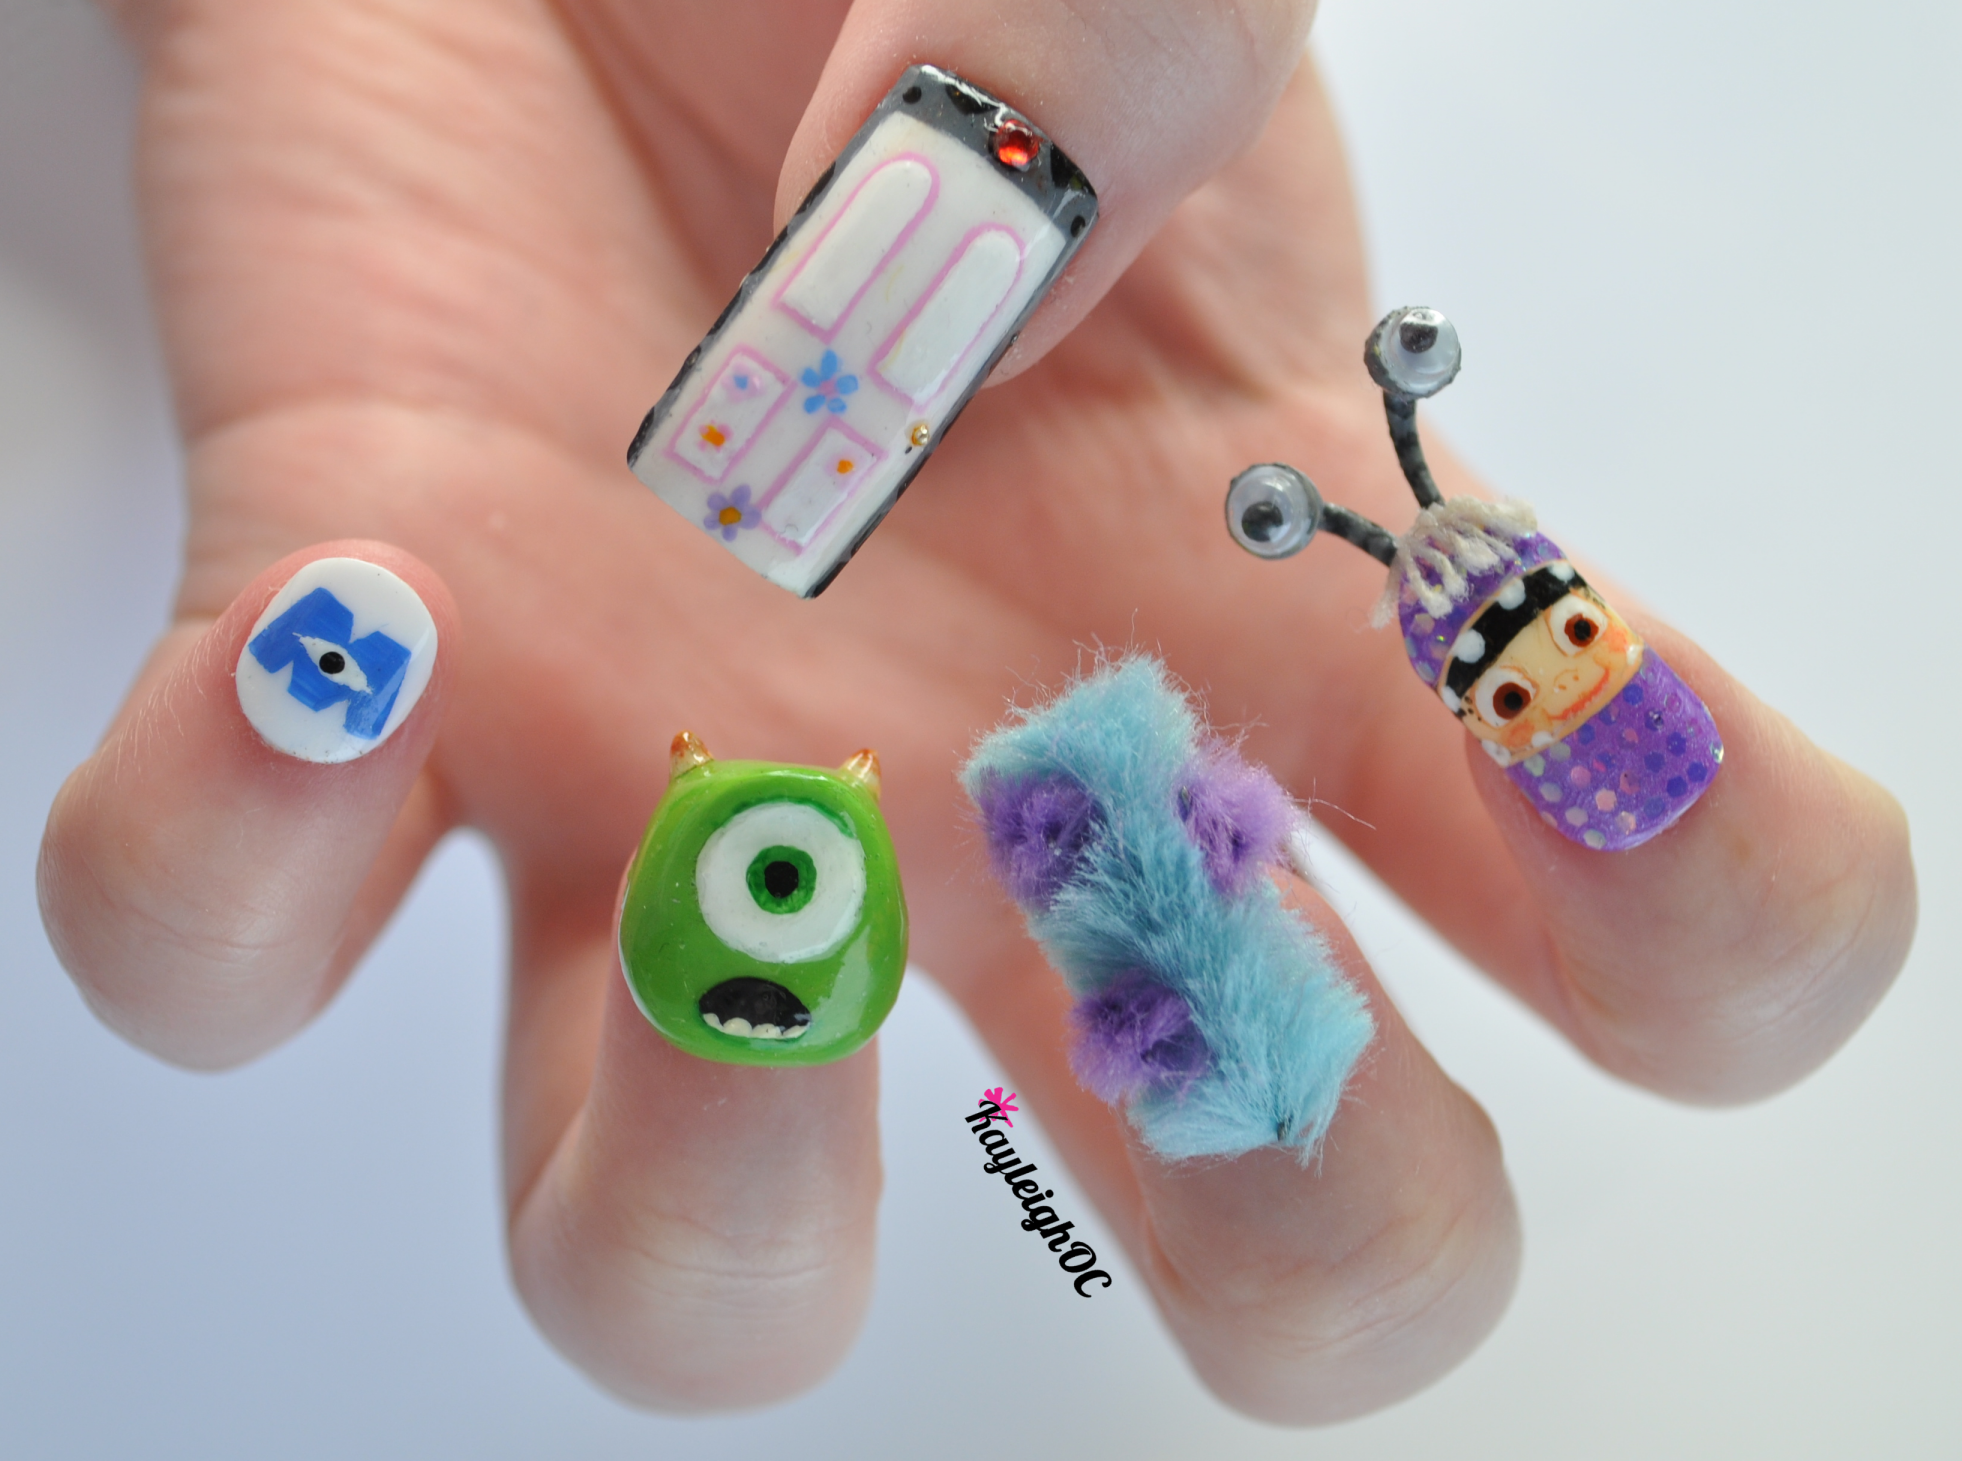 Monsters Inc 3d Nail Art By Kayleighoc On Deviantart